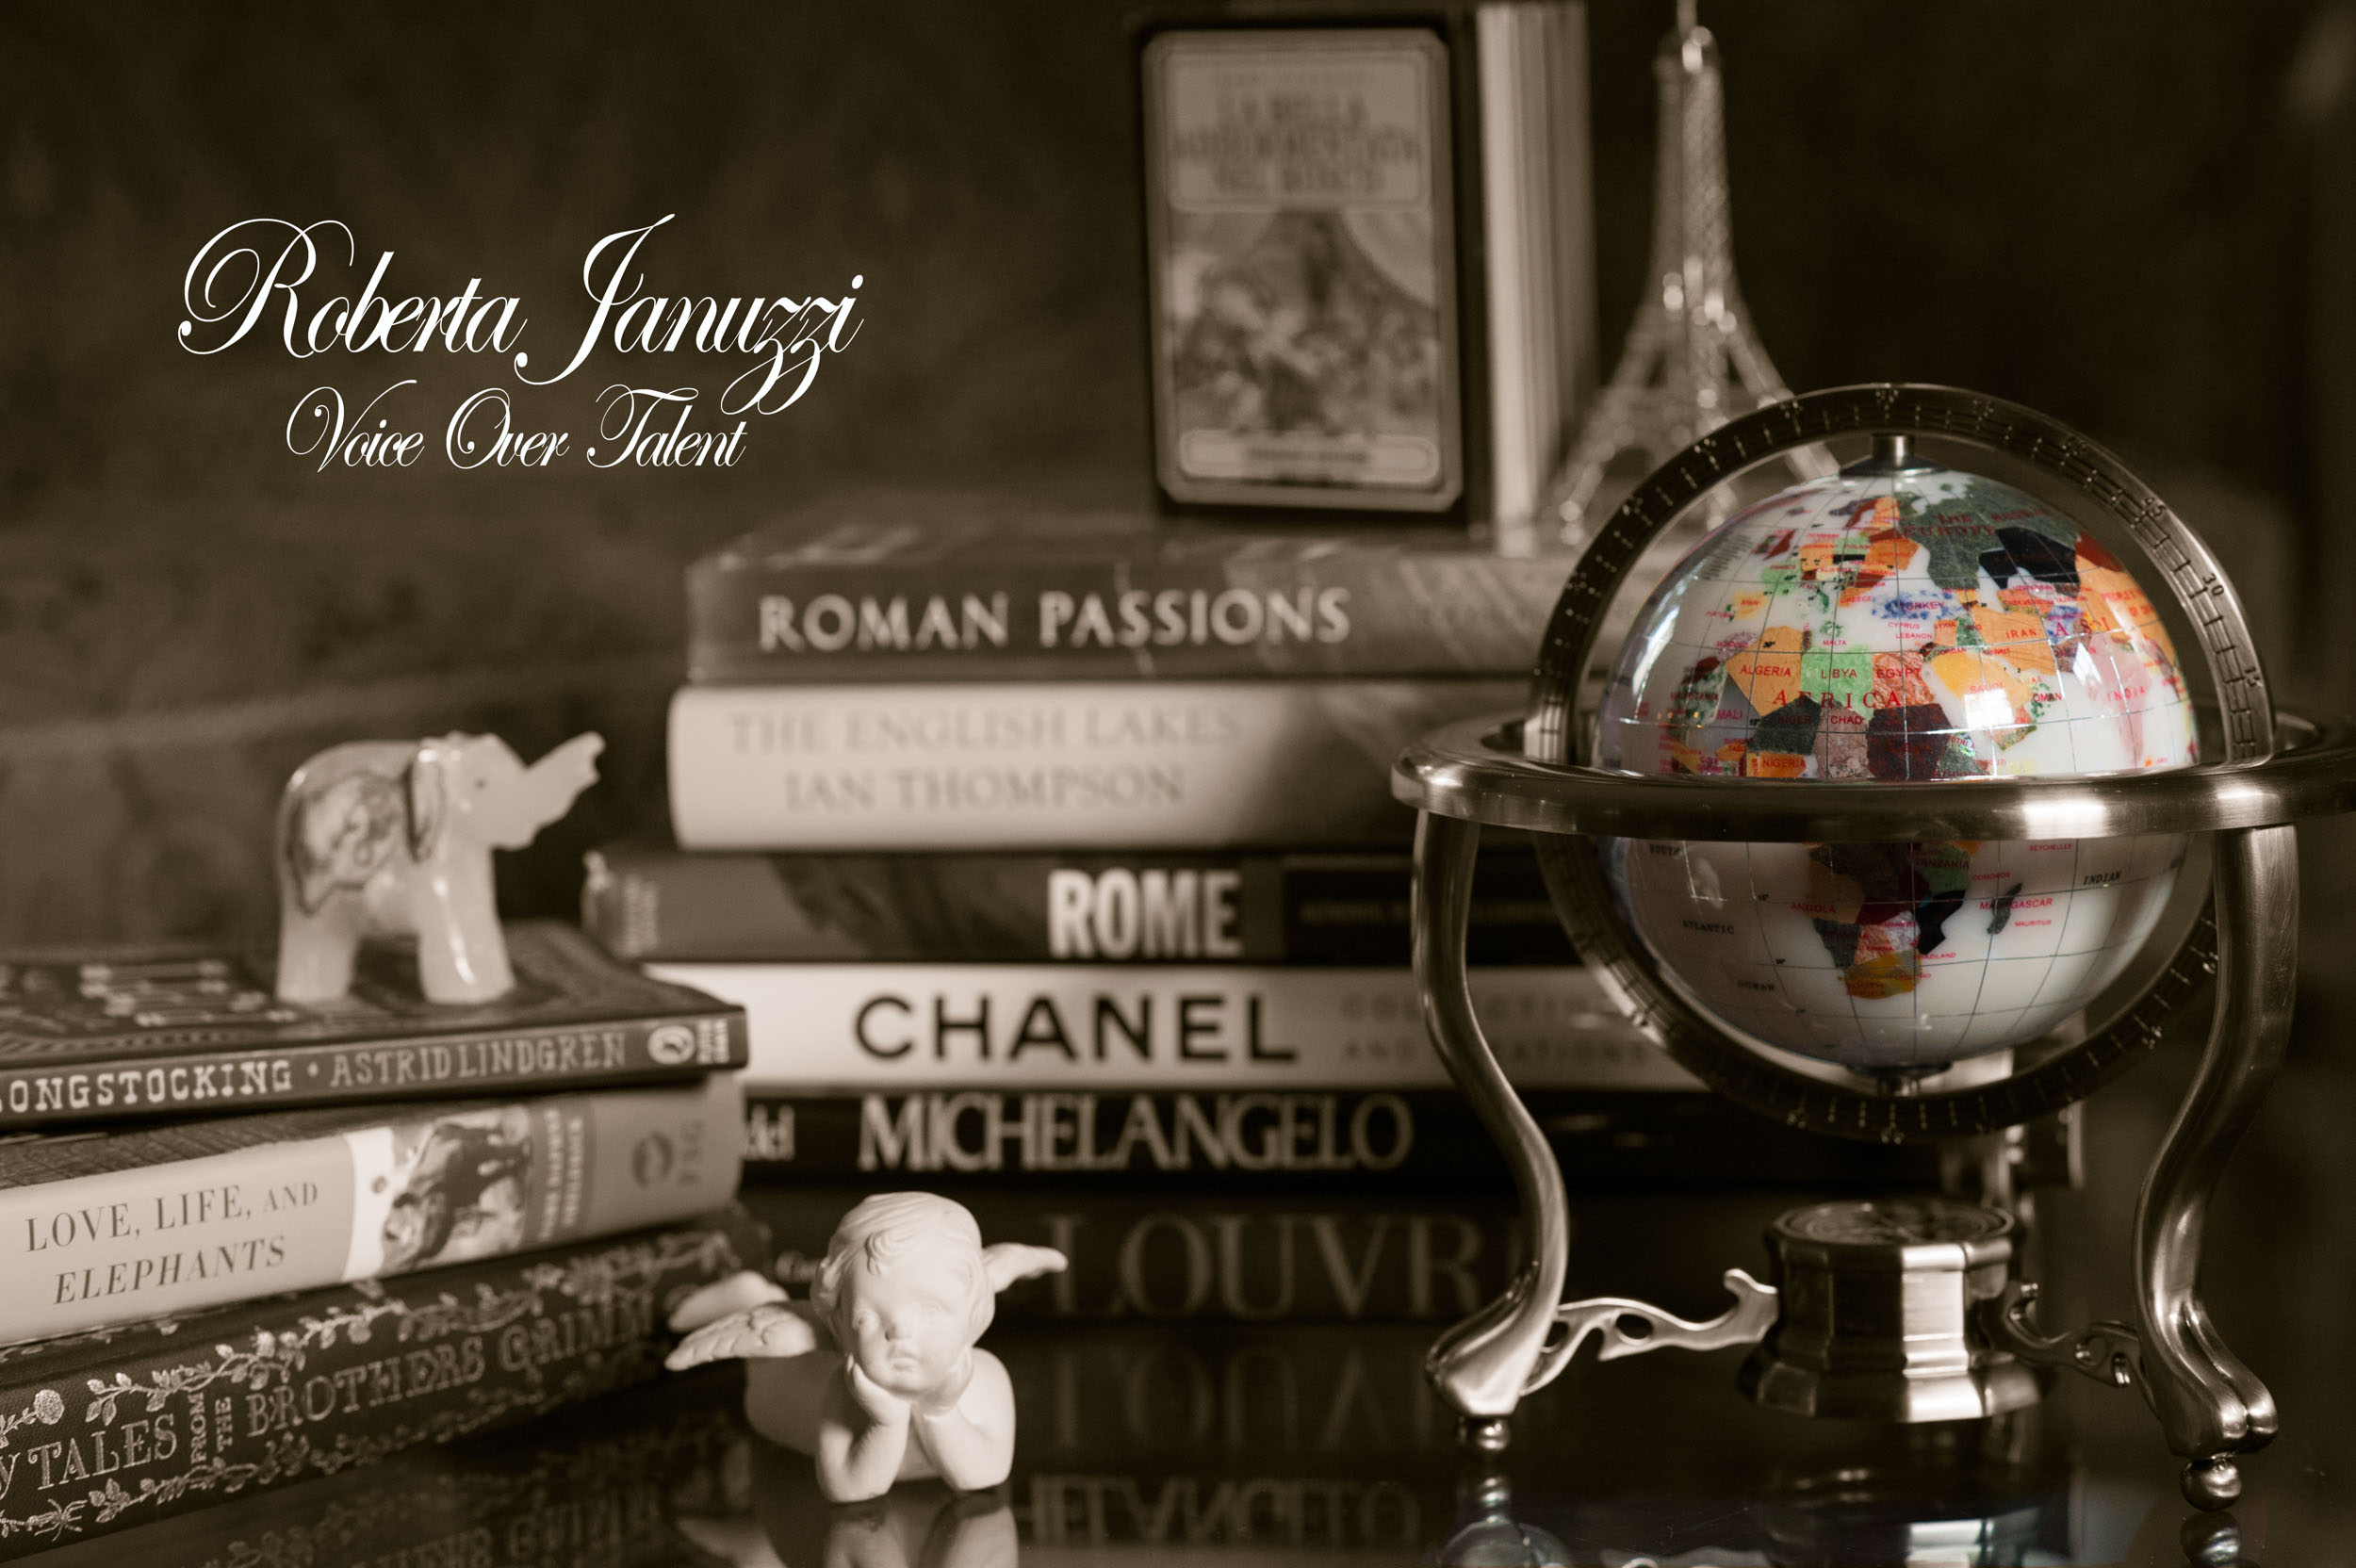 Maura Wayman Photography, Photography, Corporate Photography, stock, stock images, Massachusetts, Boston, Metro West, still life, globe, cherib, elephant, books, selective color, selective focus,